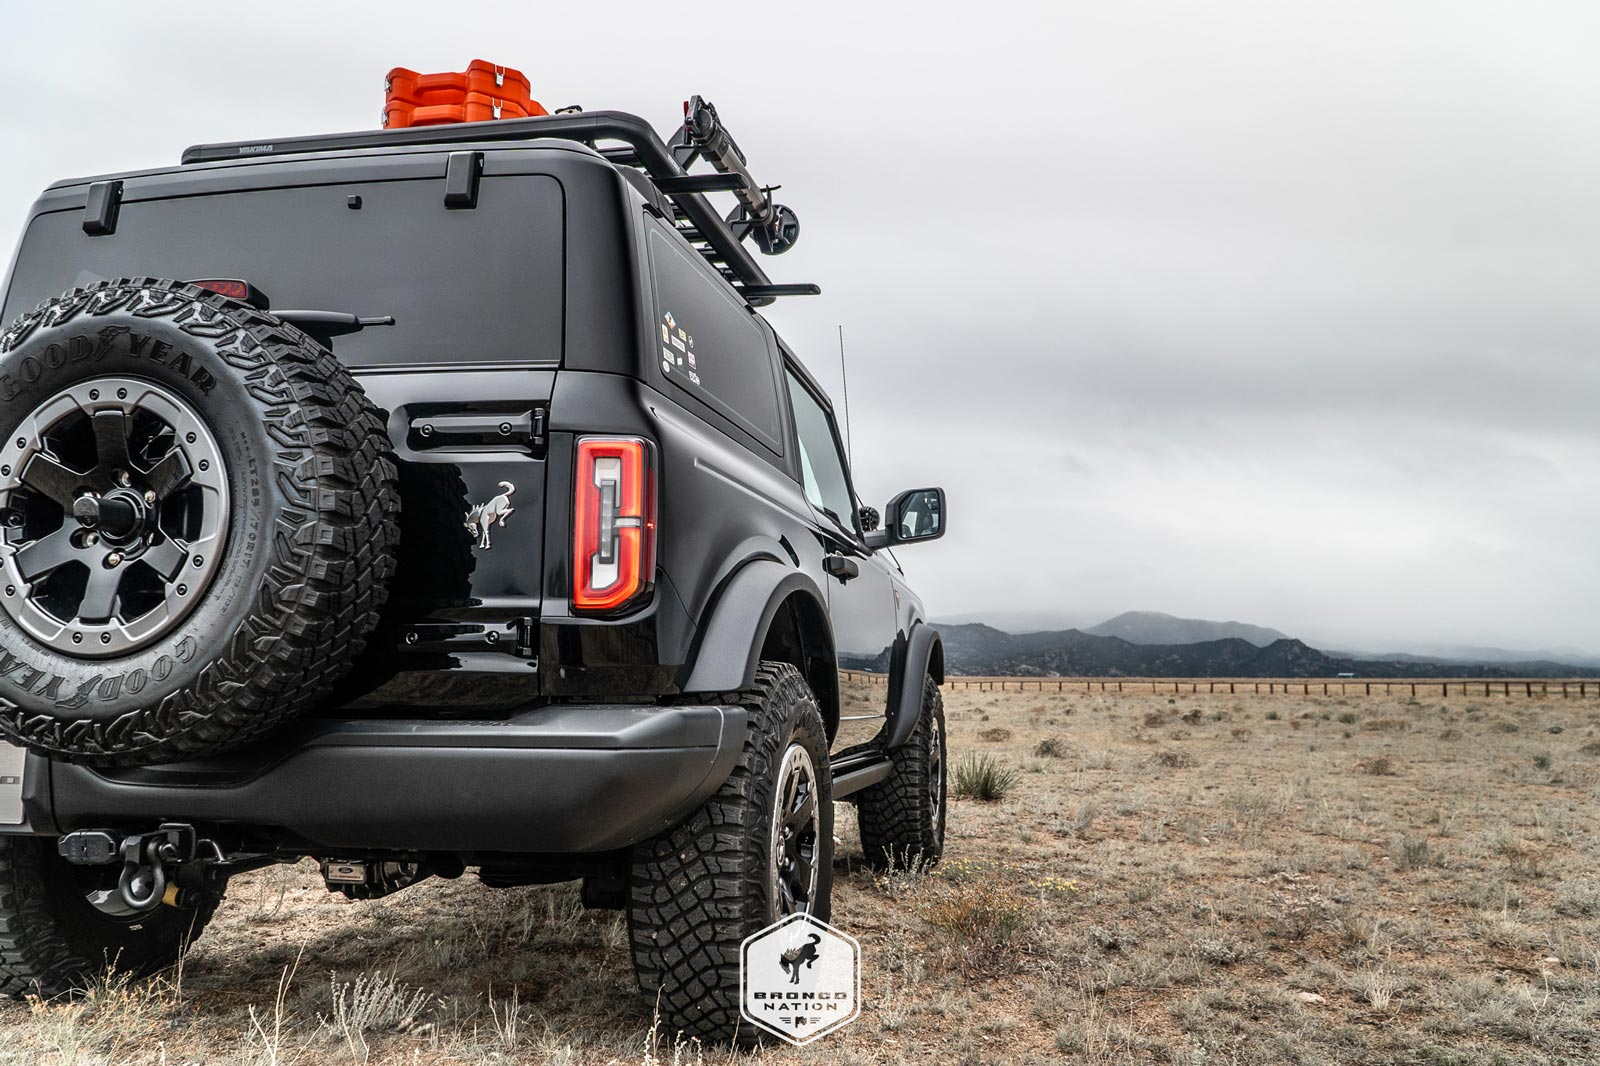 Ford Bronco Updates: News On Tops, Conversions, And Compensation